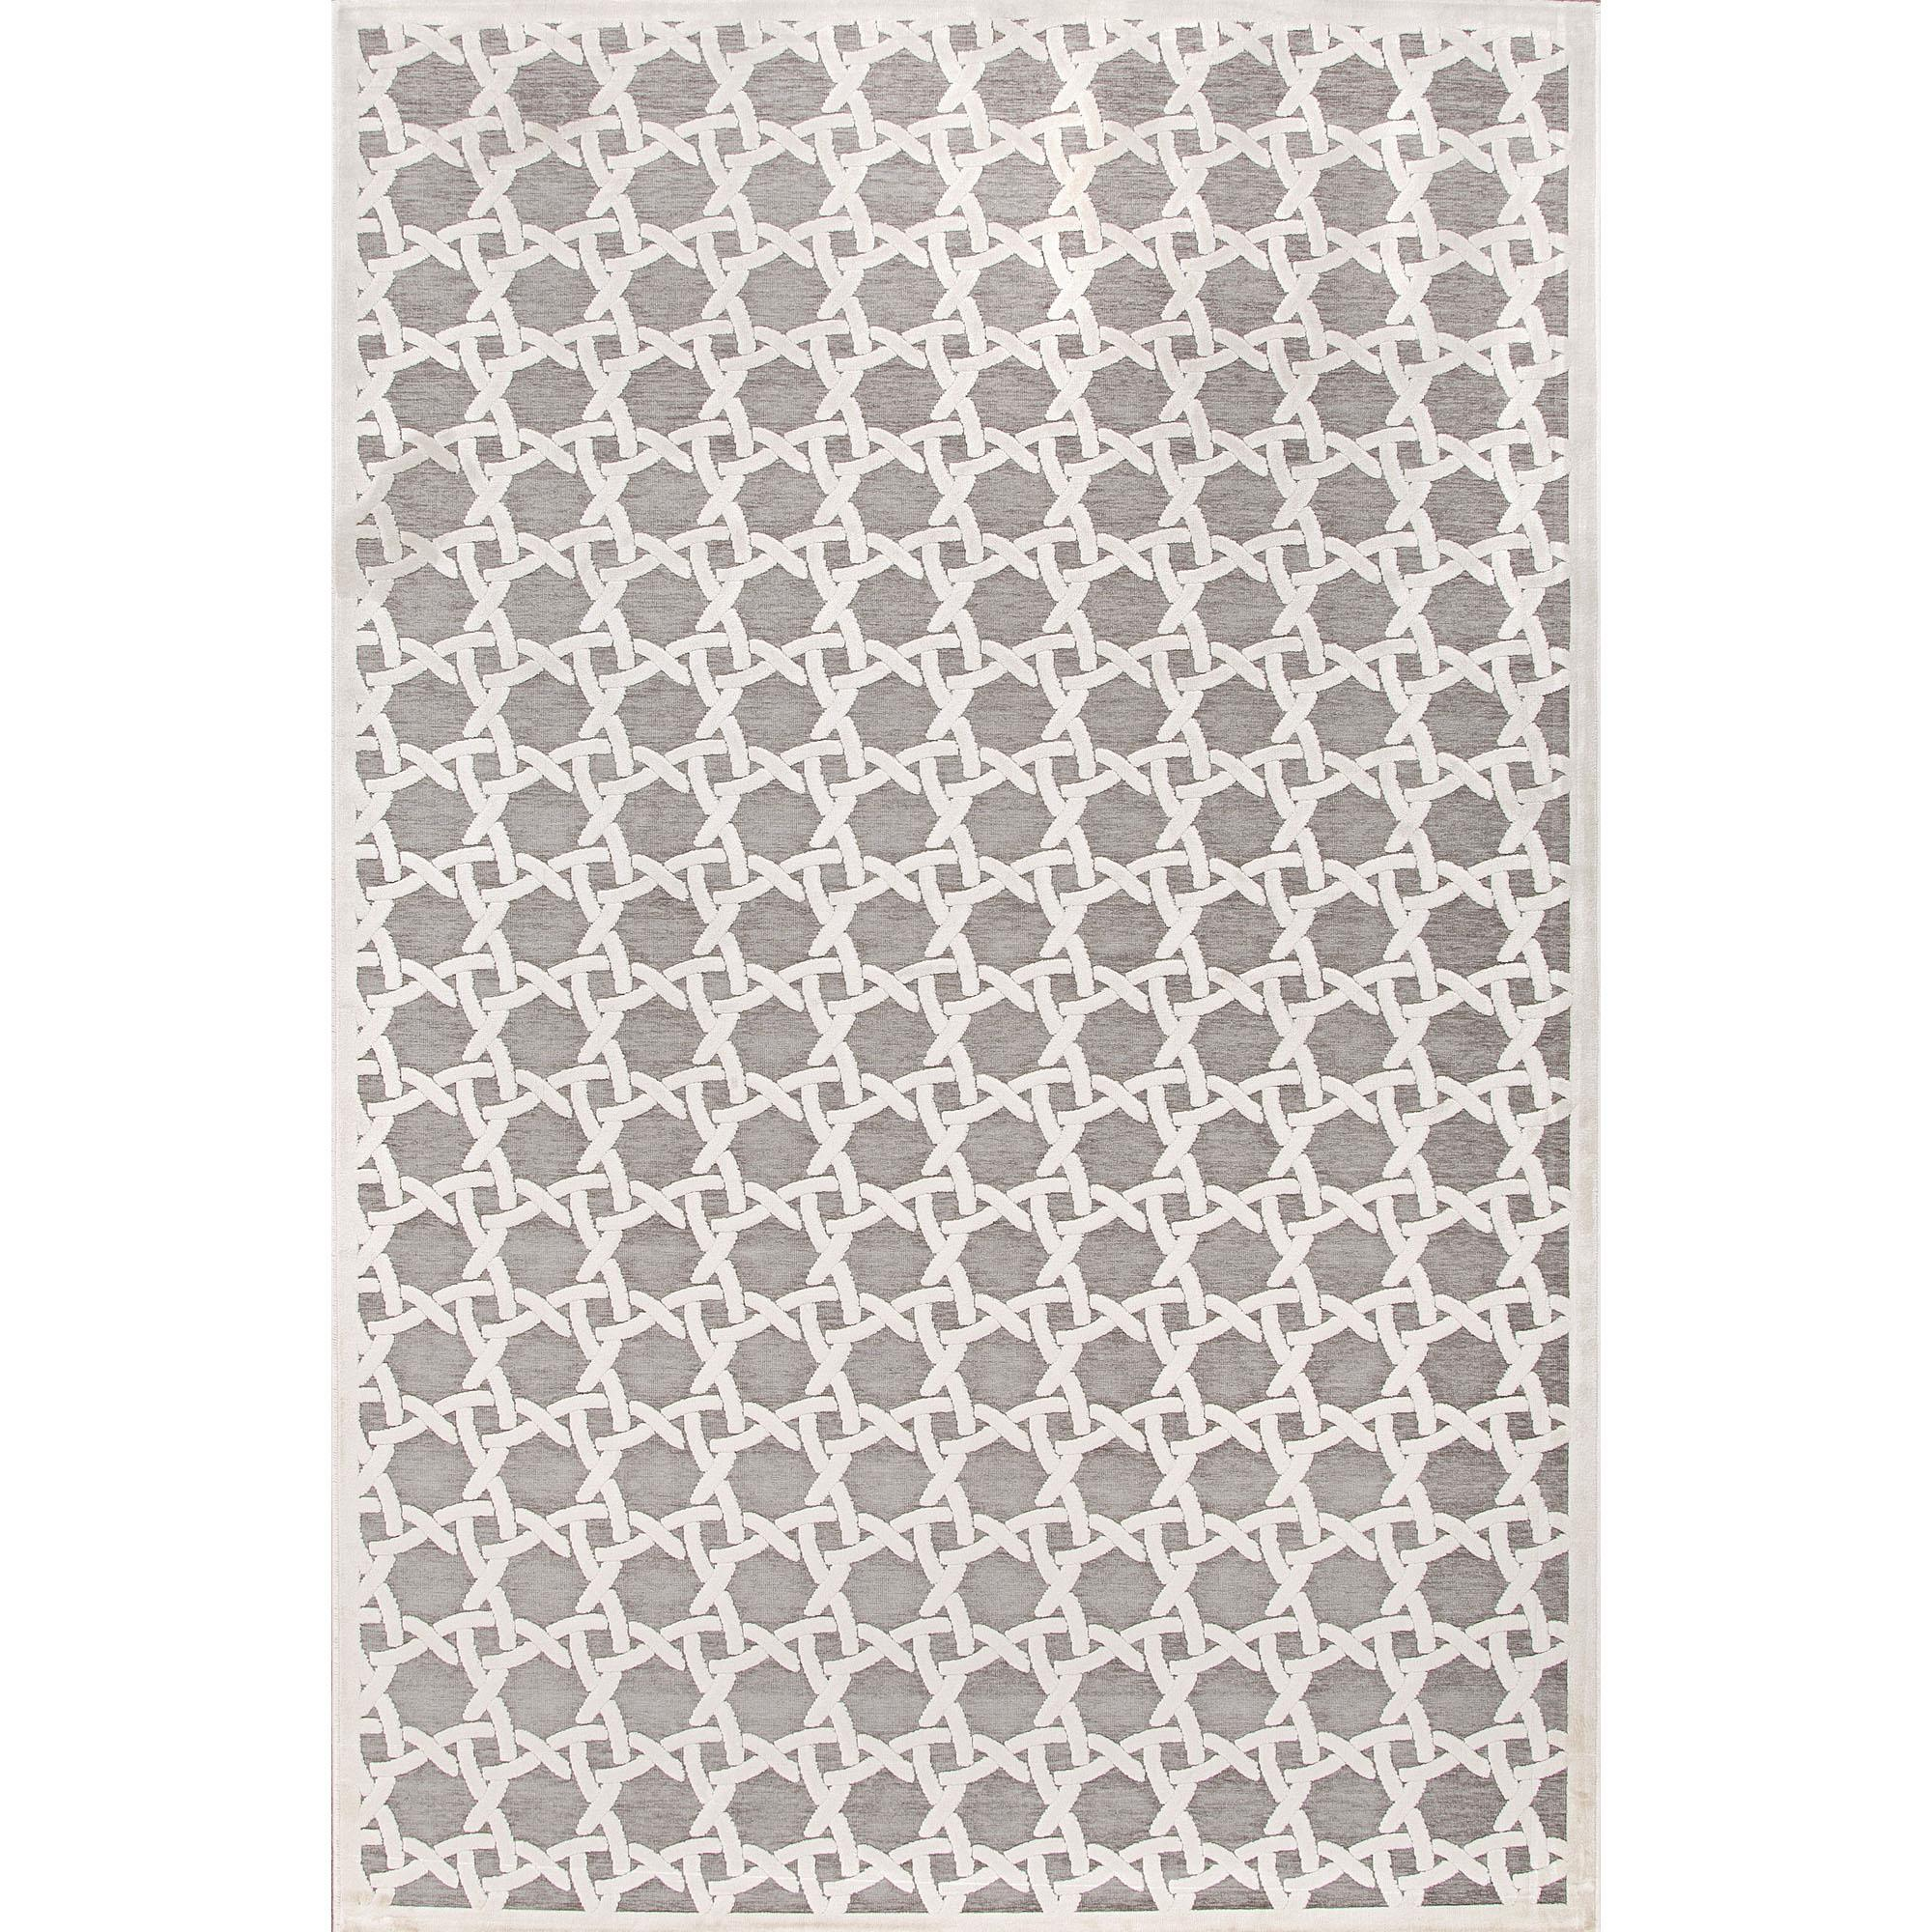 JAIPUR Rugs Fables 9 x 12 Rug - Item Number: RUG111966